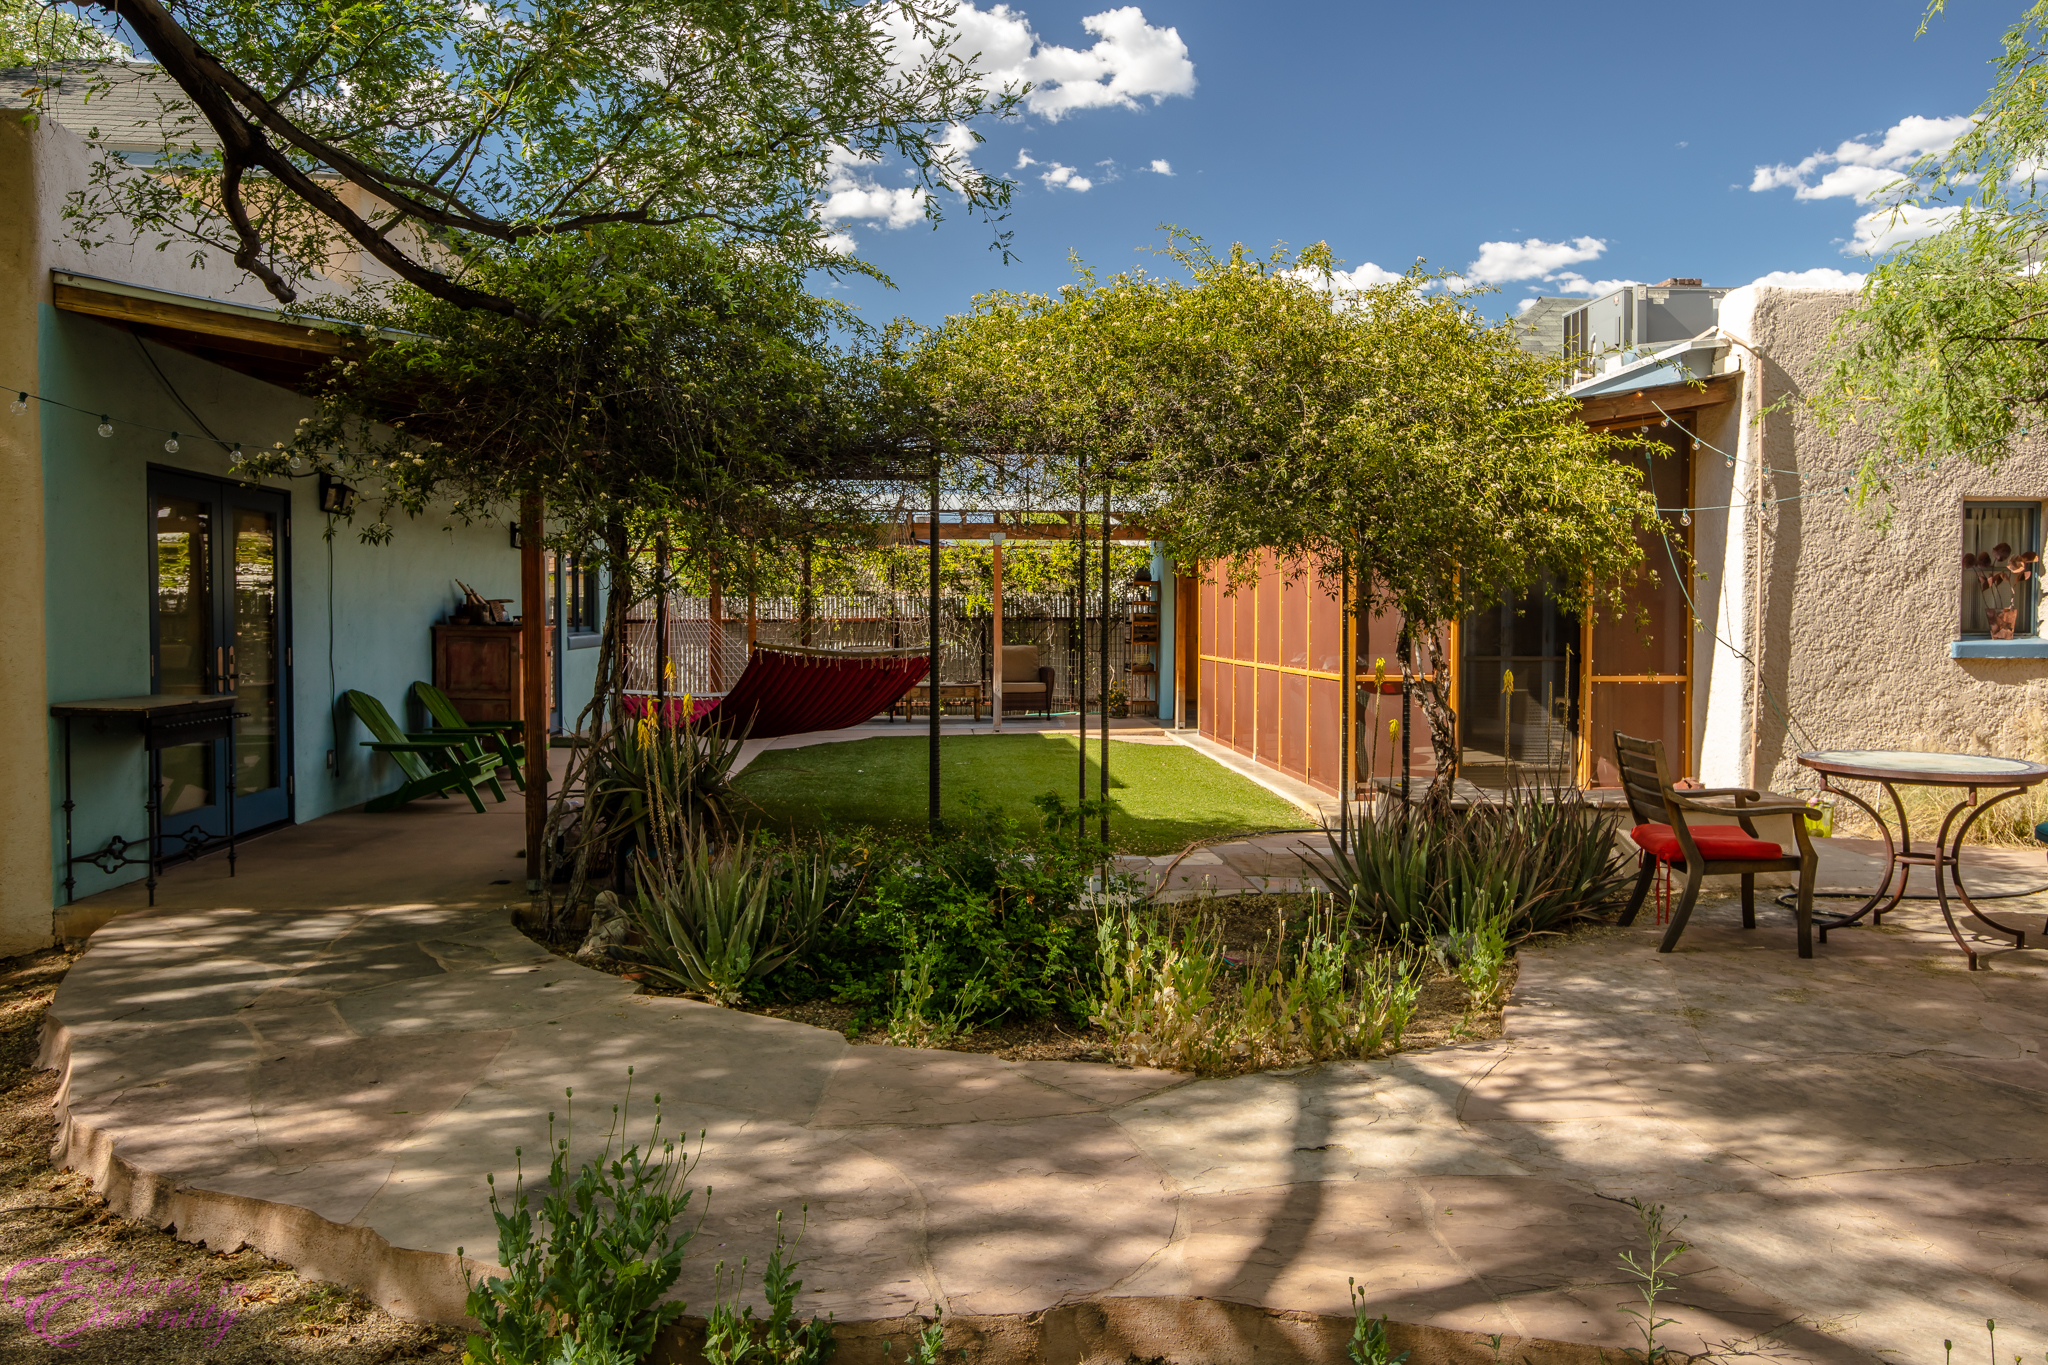 Professional Photos Tucson Arizona Rental Real Estate Photography Airbnb VRBO 08.jpg